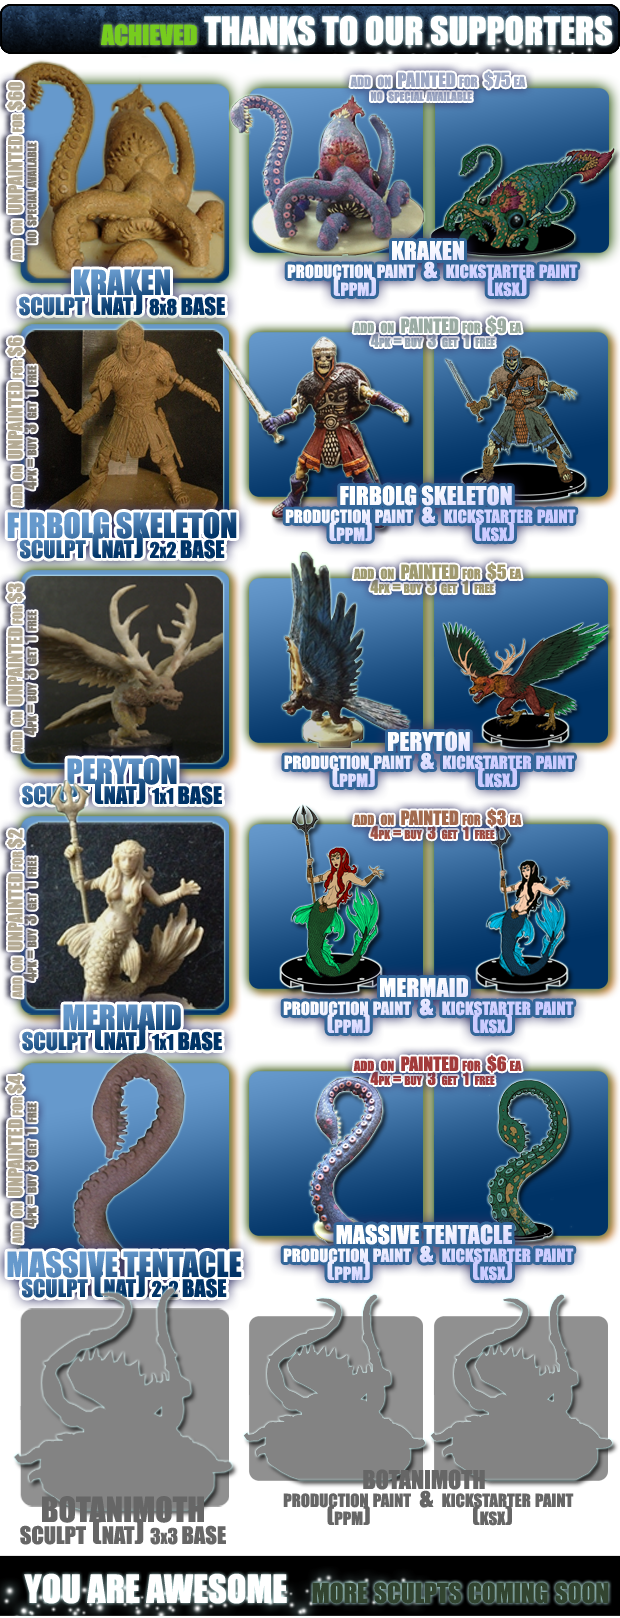 Tags :: Kraken, Firbolg Skeleton, Peryton, Mermaid, Massive Tentacle, Botanimoth, Unpainted, Painted, 4 packs, Available, Funded, Achieved.